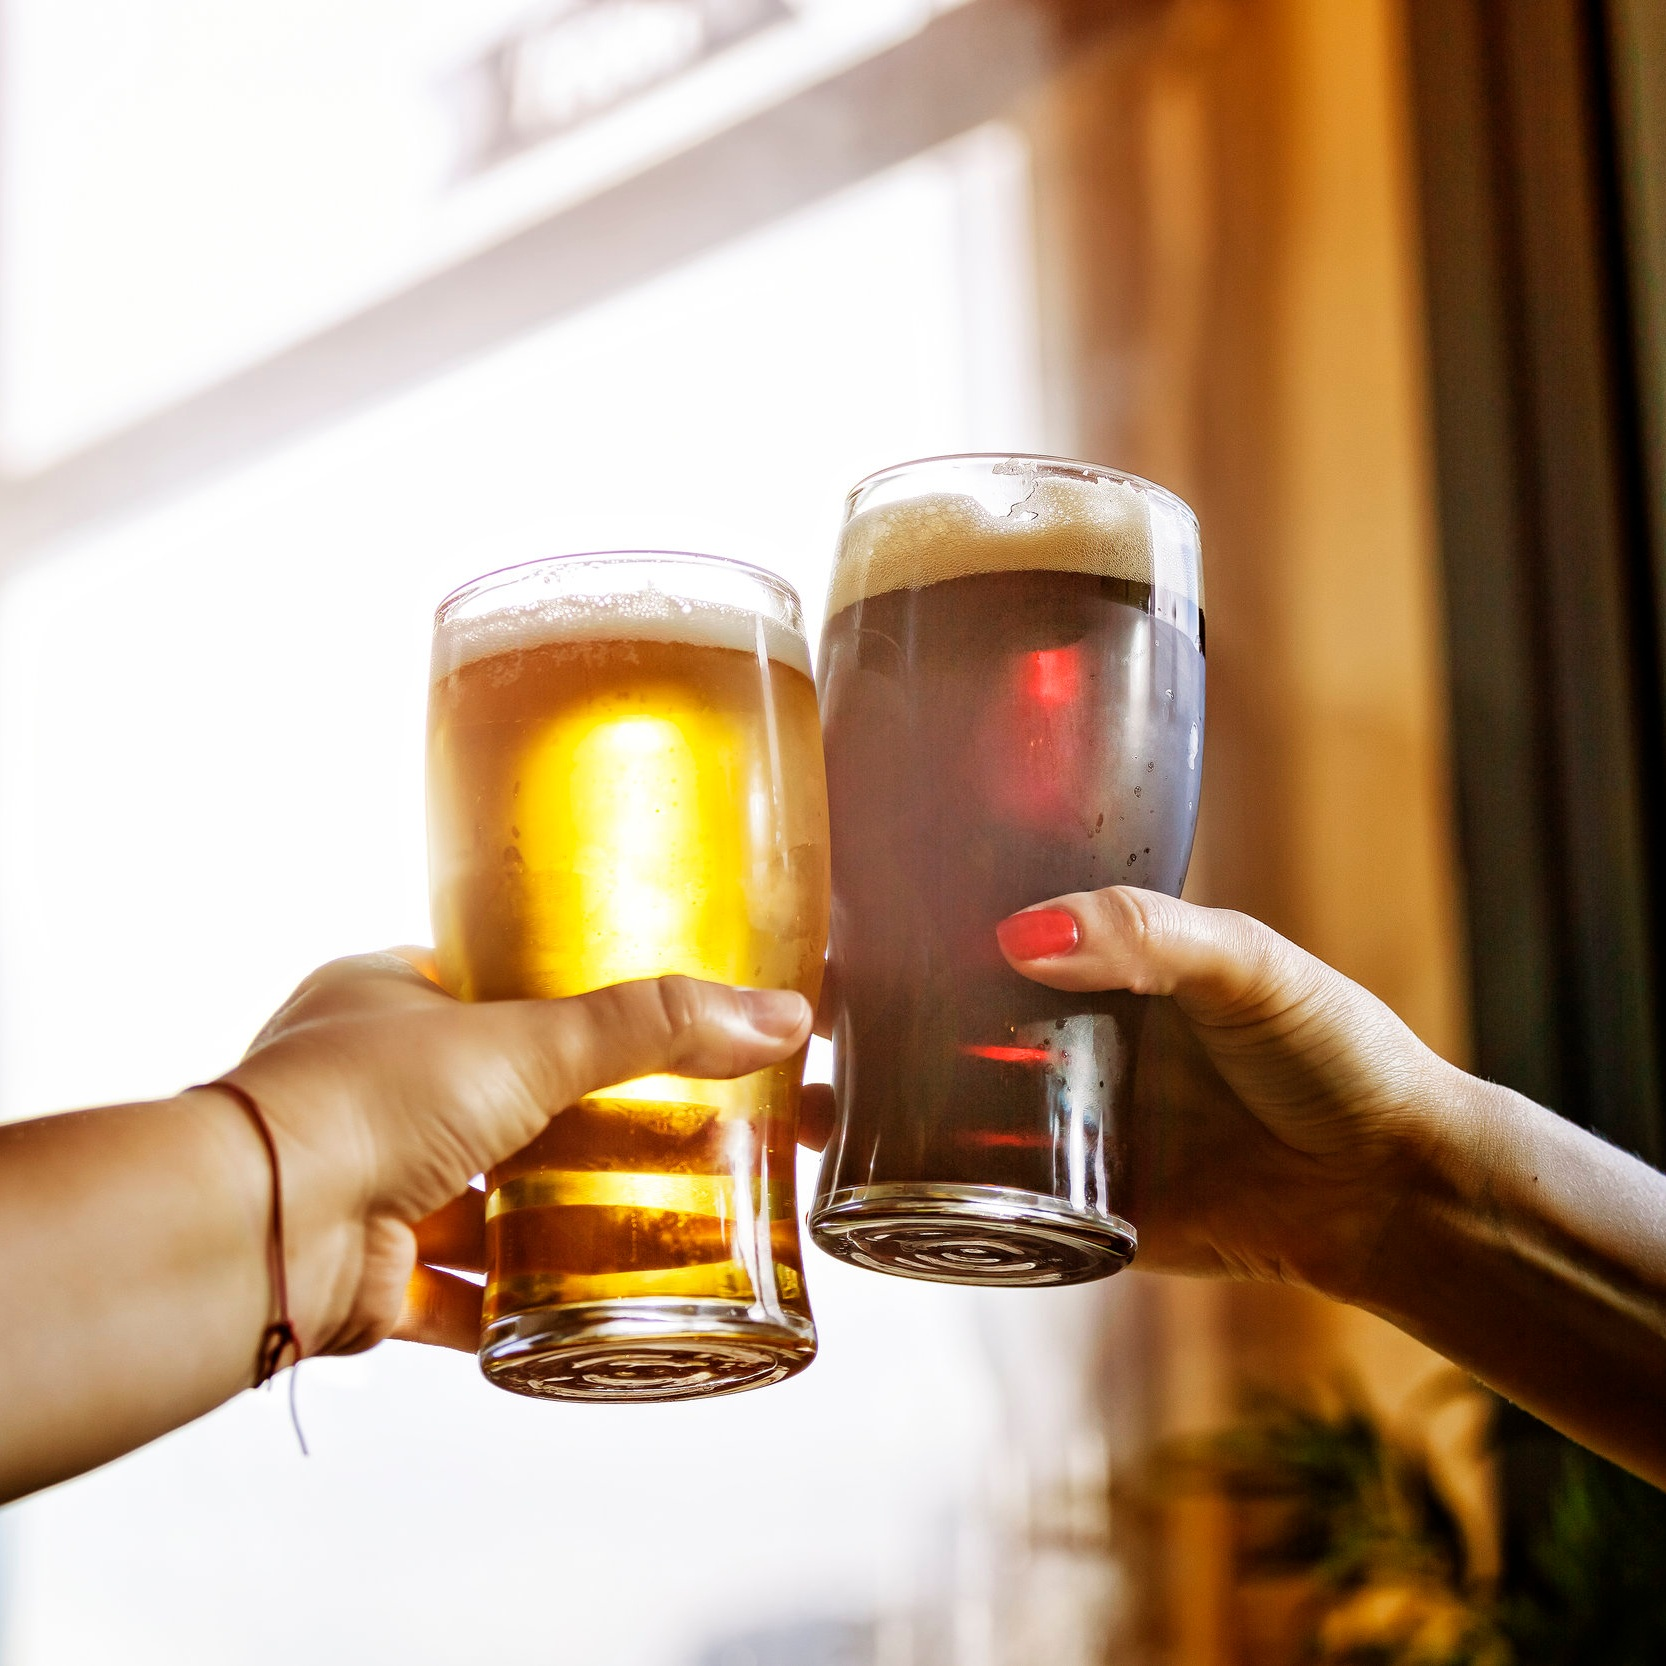 HAPPY HOUR? CHECK. - WEEK DAYS 3:30-6:00